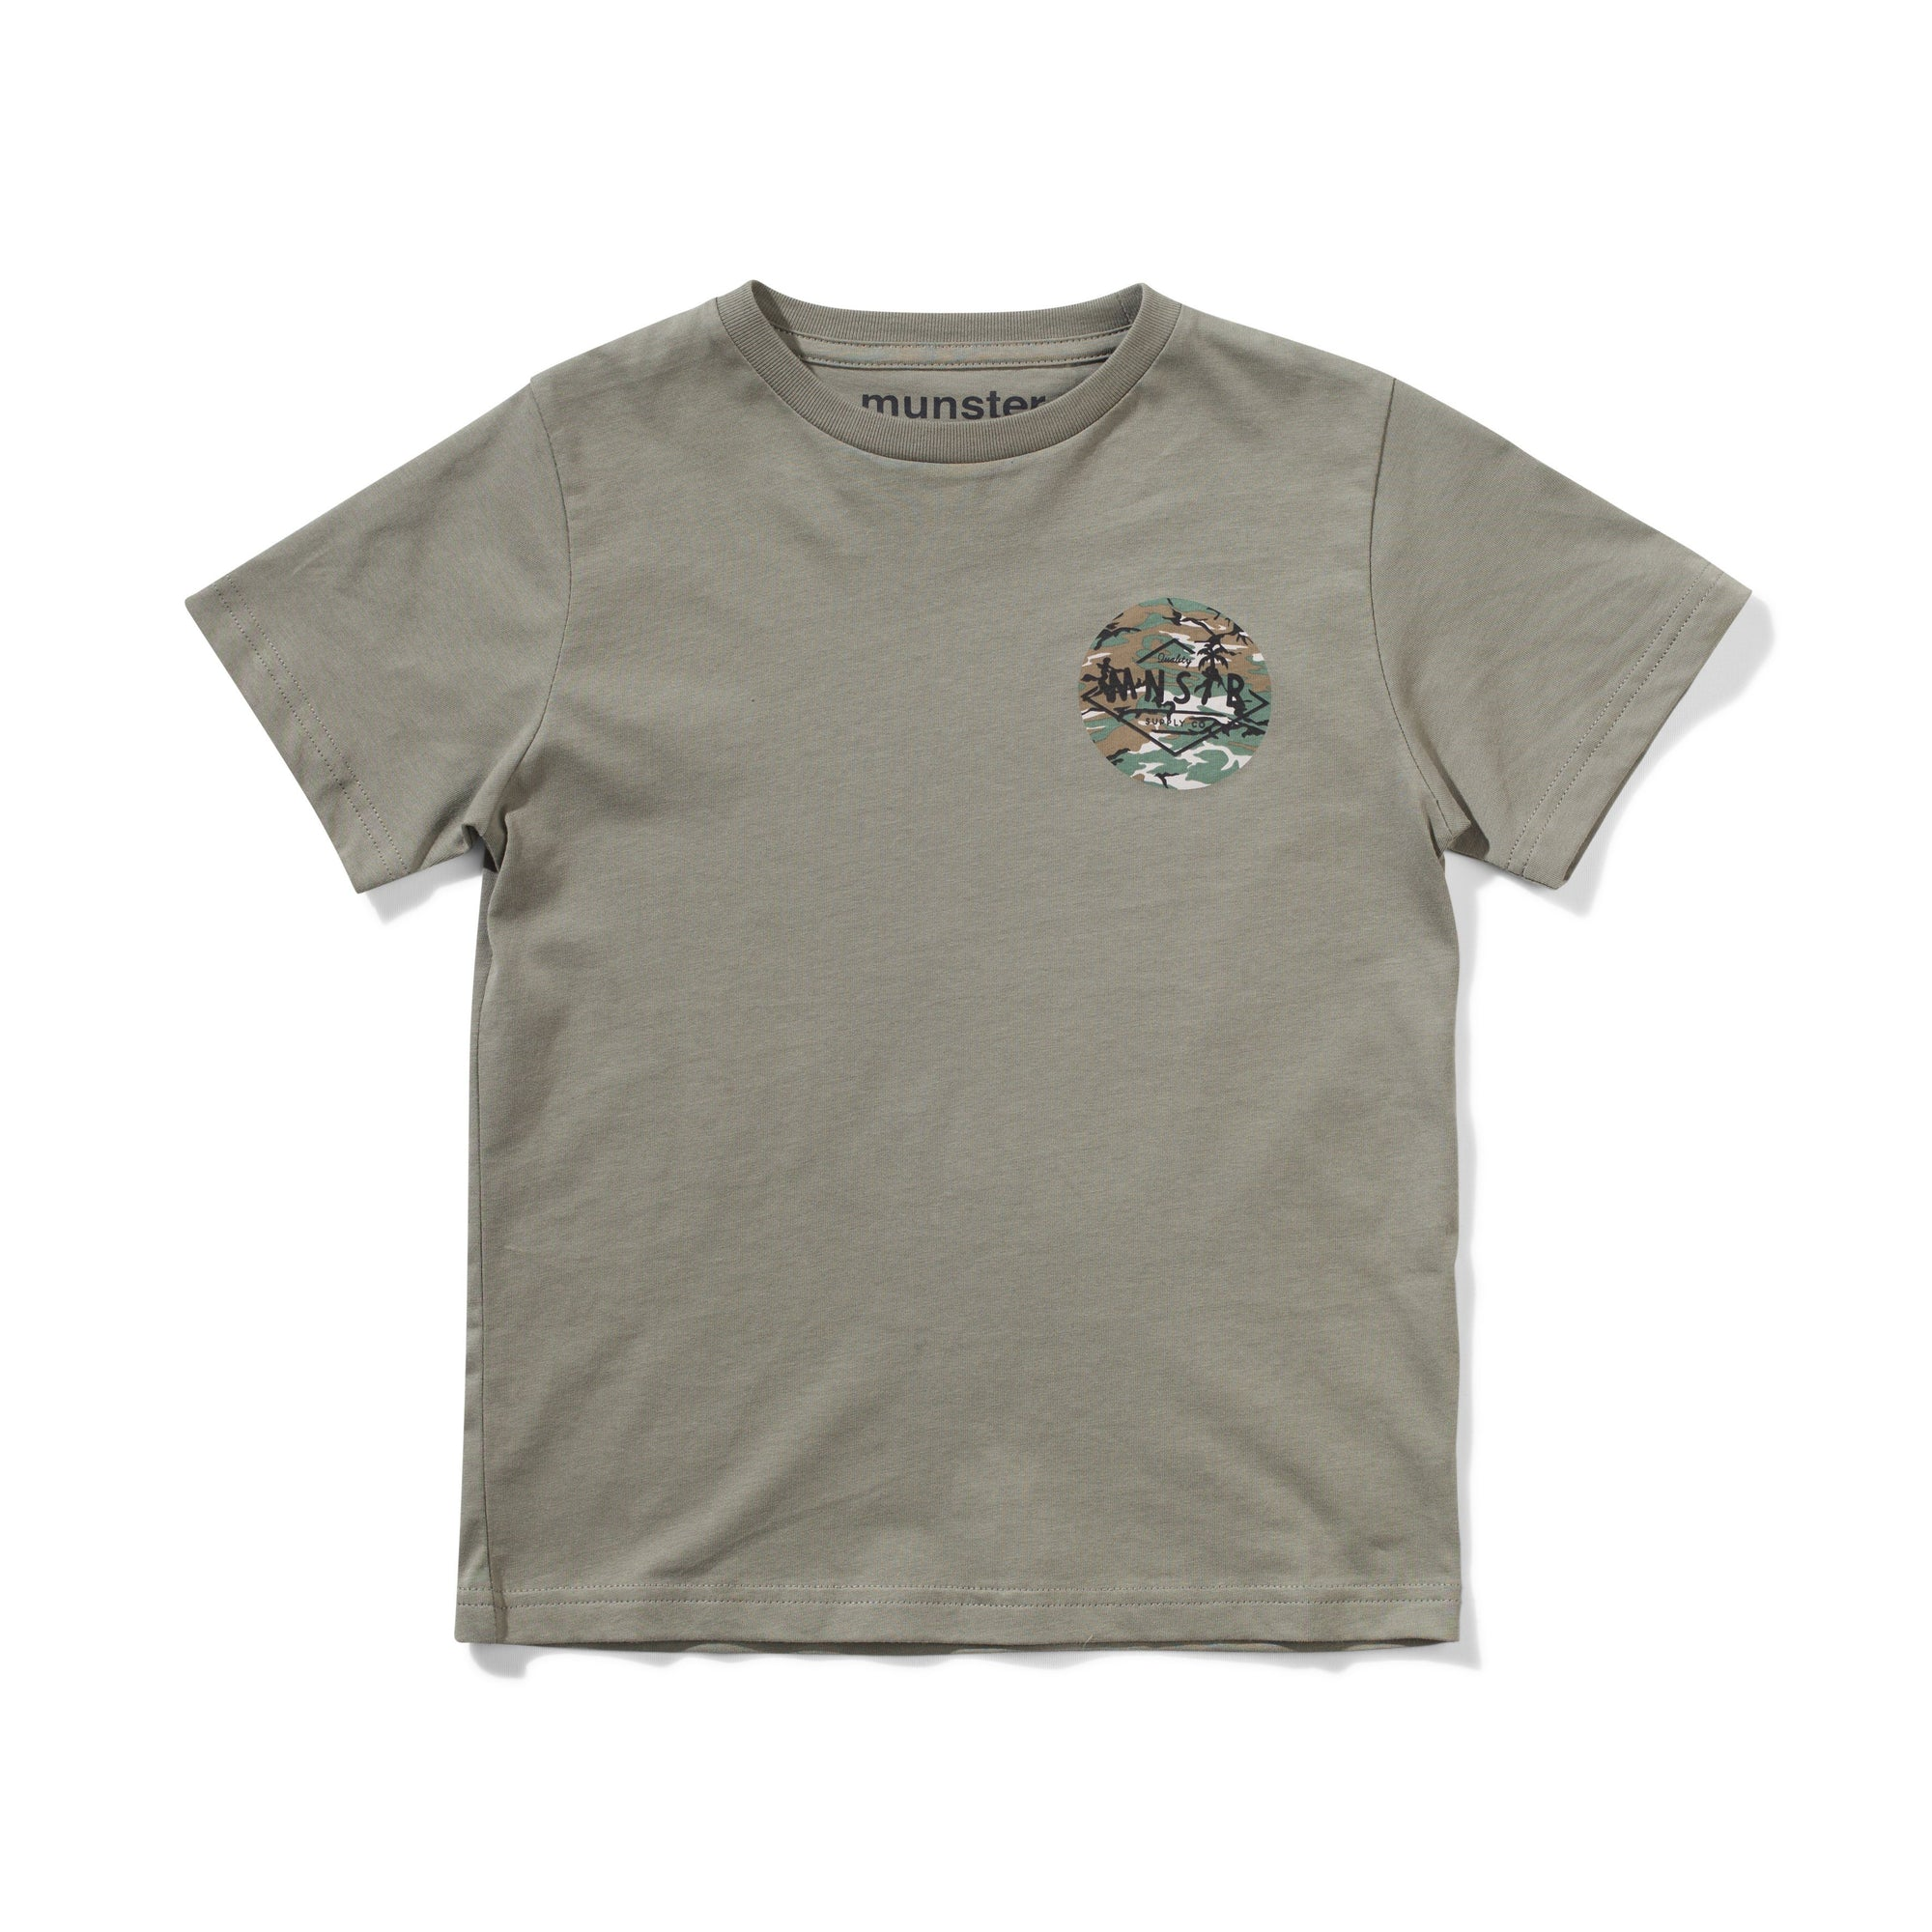 CAMOSINCE TEE BOYS CLOTHING MUNSTERKIDS